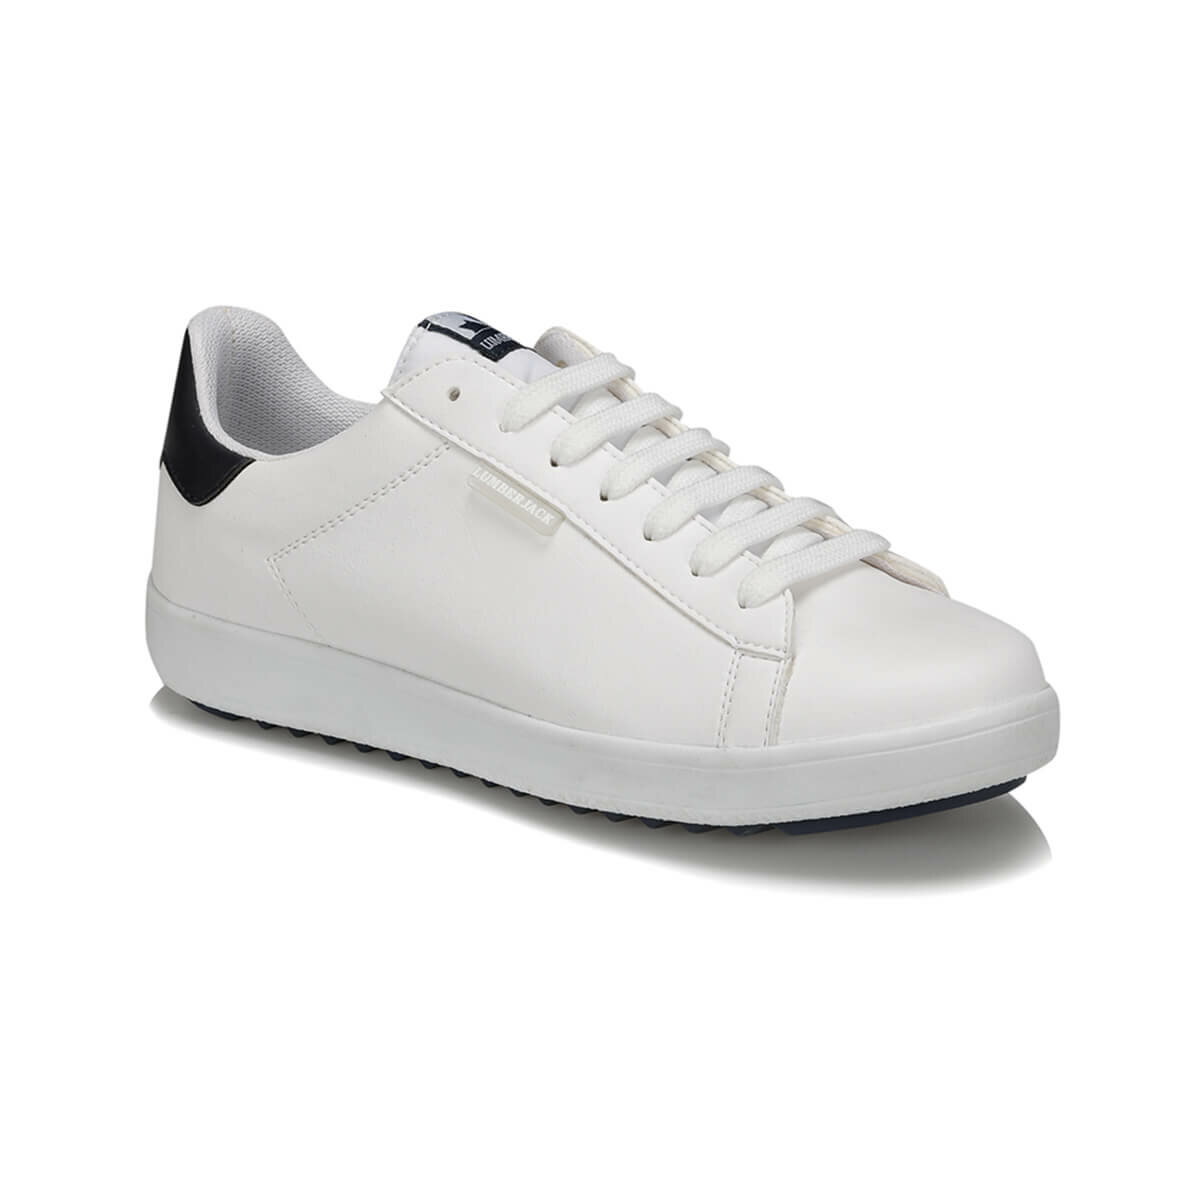 FLO BETNA 9PR White Men 'S Sneaker Shoes LUMBERJACK